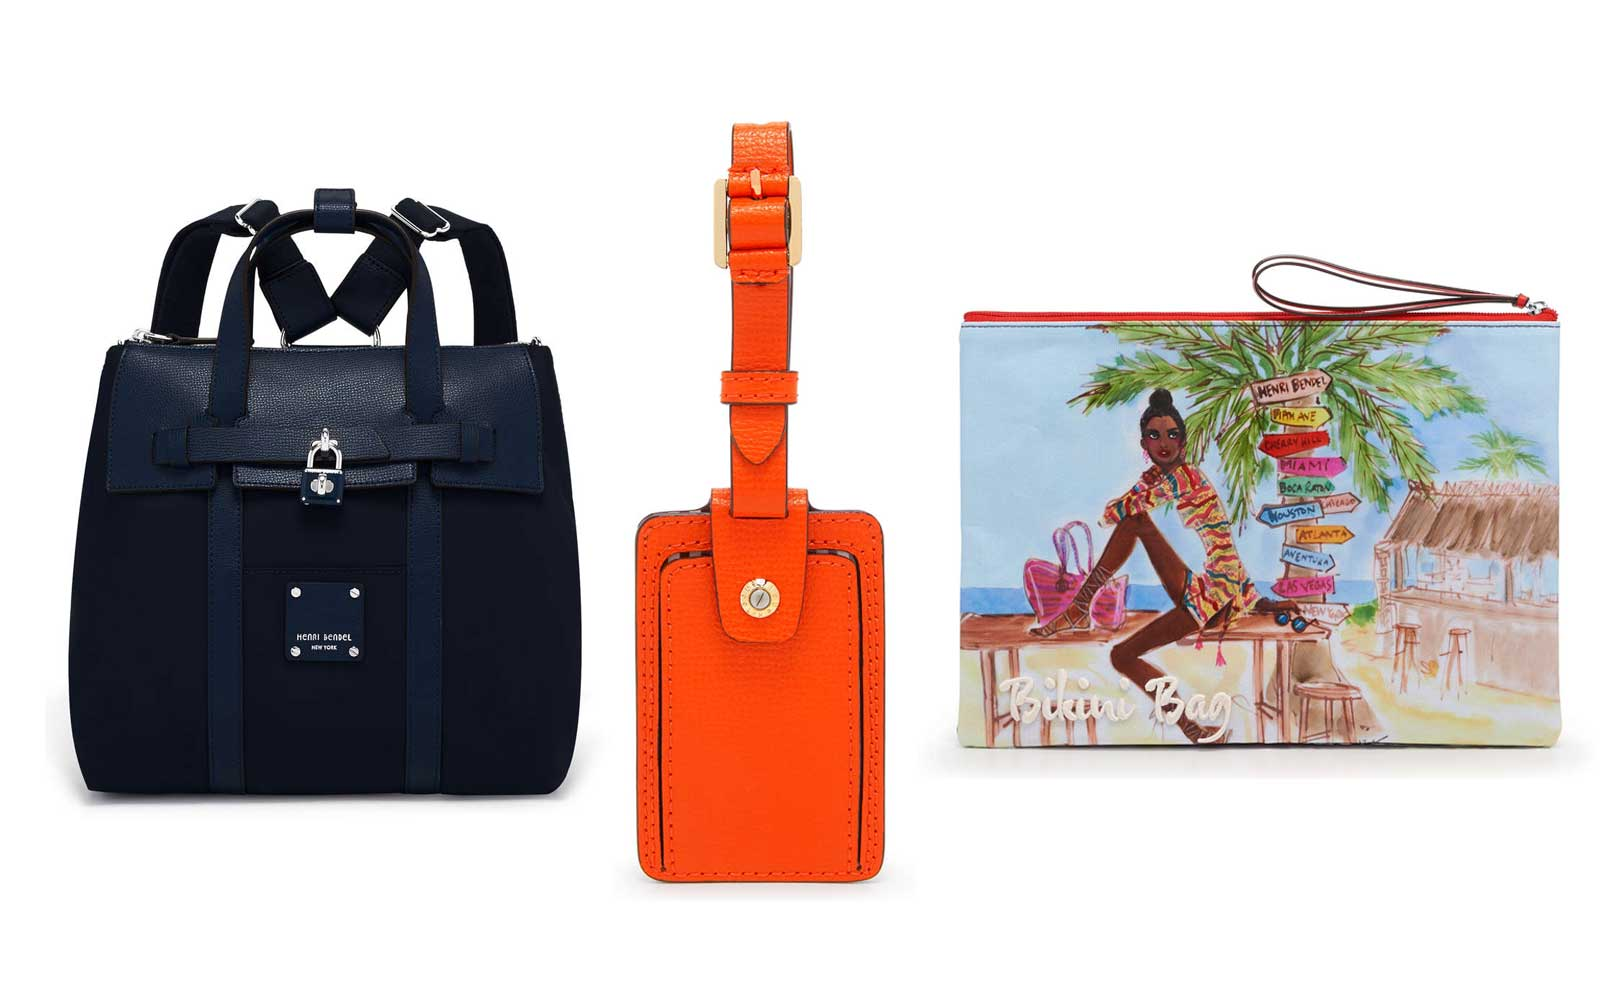 8 Stylish Travel Accessories From Henri Bendel We Can't Get Enough of